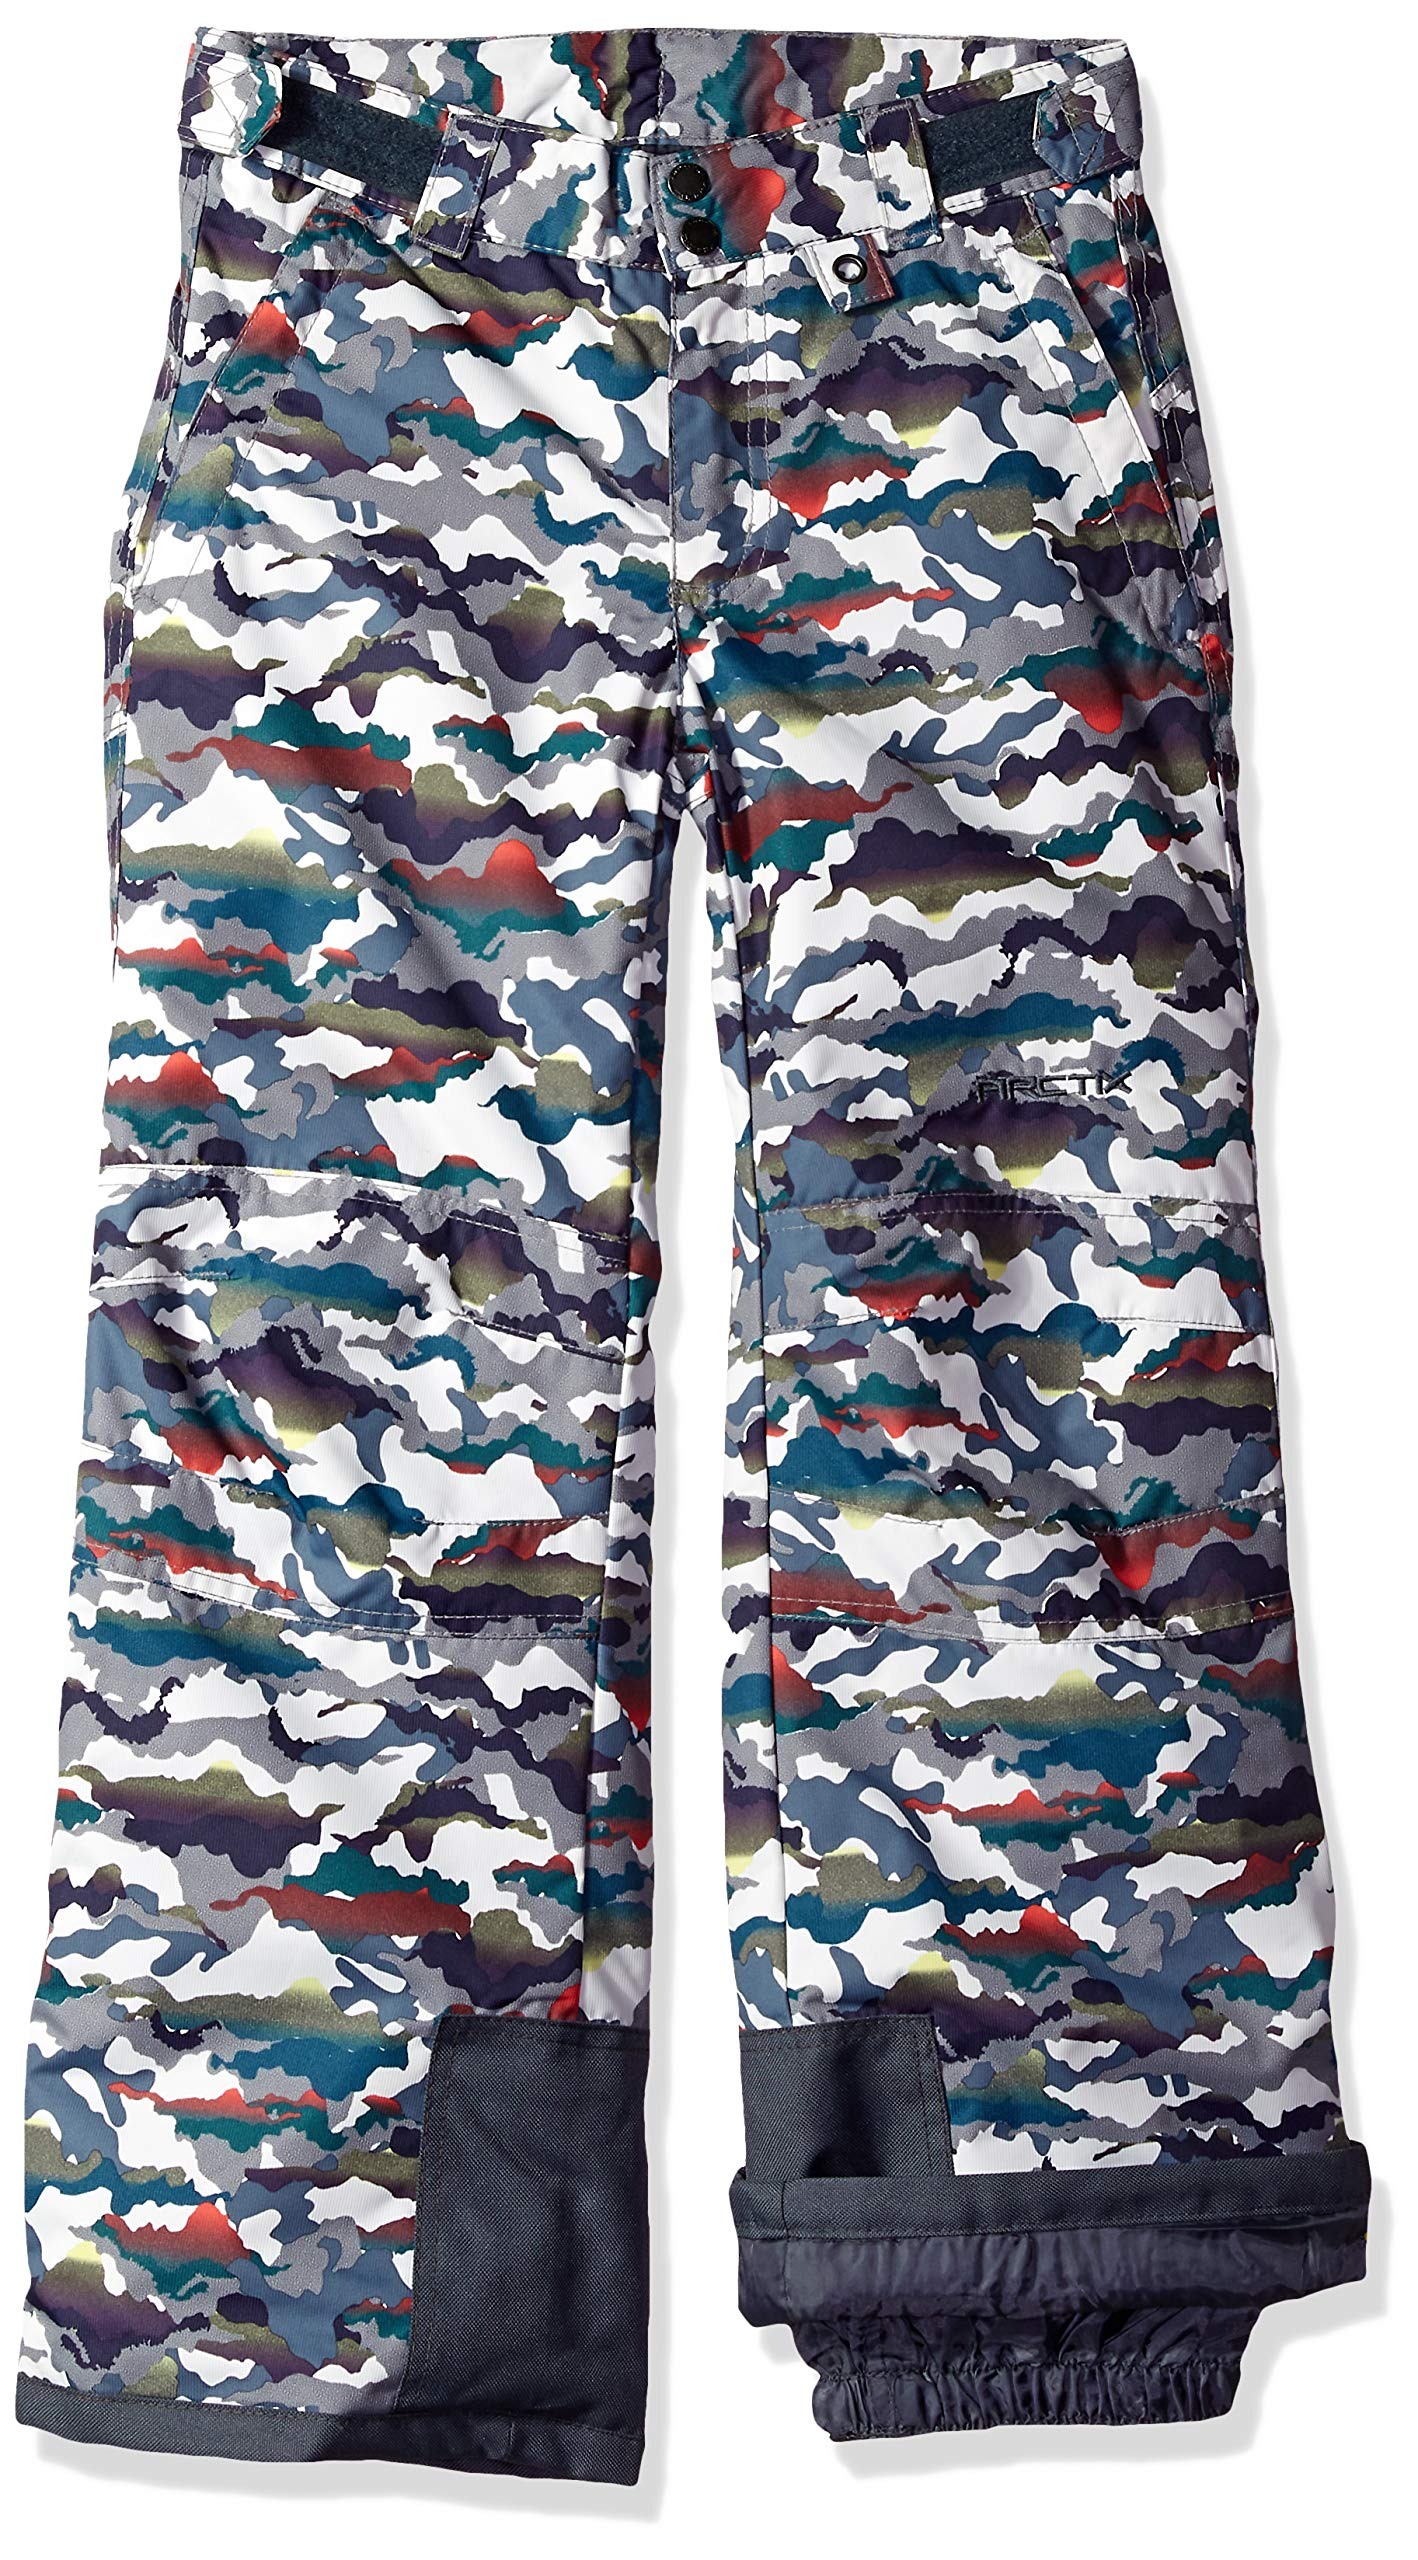 Arctix Youth Snow Pants with Reinforced Knees and Seat, White Multi Camo, Medium by Arctix